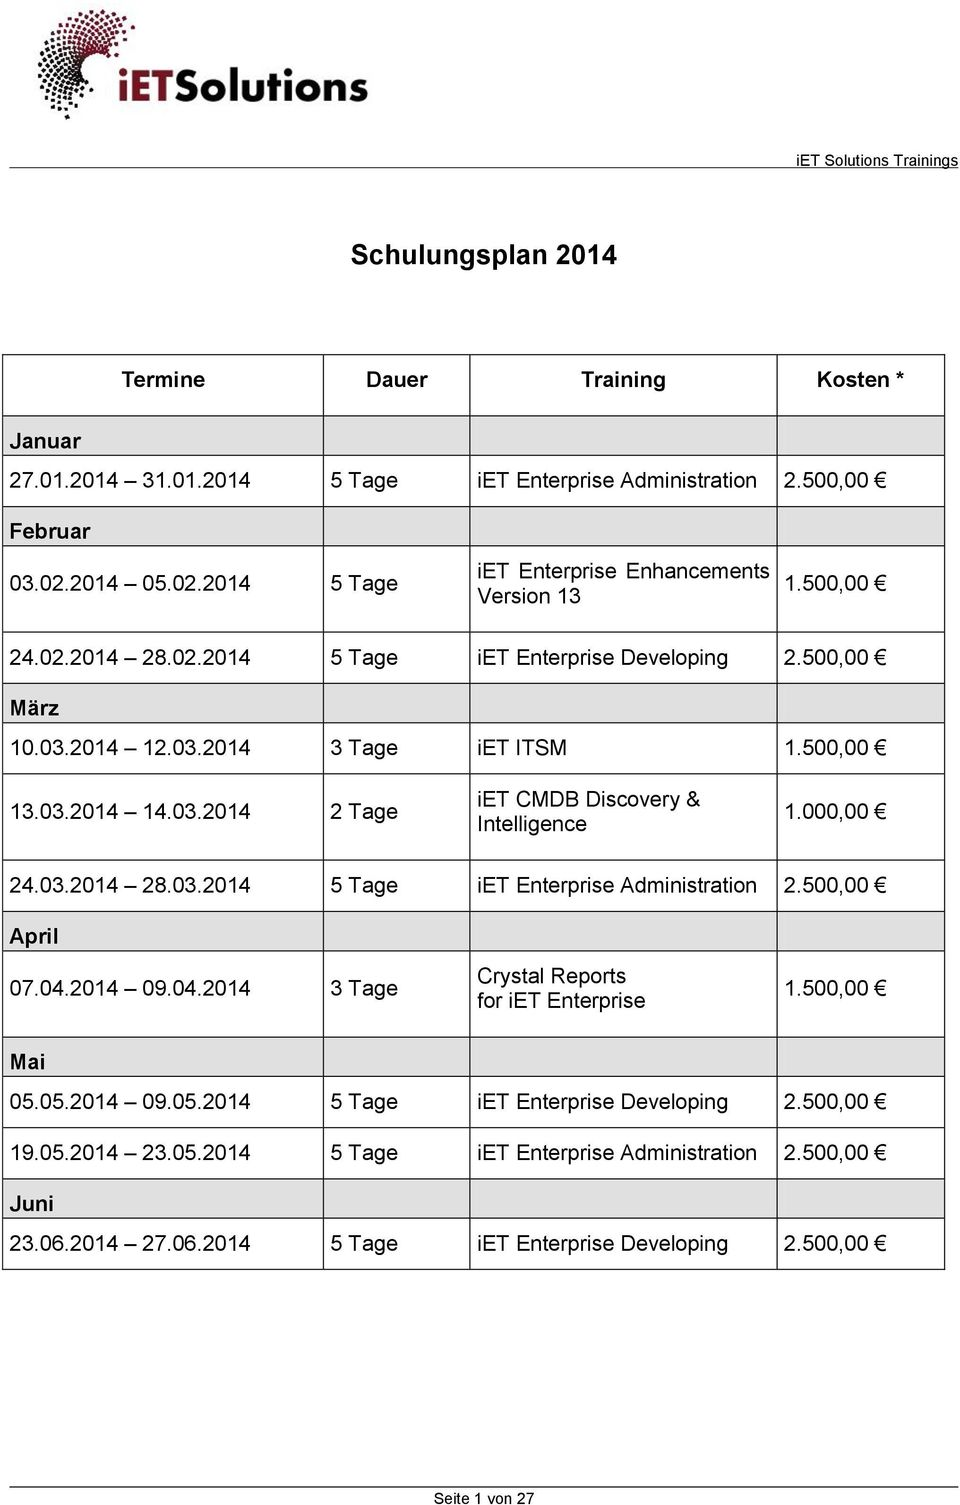 03.2014 14.03.2014 2 Tage iet CMDB Discovery & Intelligence 1.000,00 24.03.2014 28.03.2014 5 Tage iet Enterprise Administration 2.500,00 April 07.04.